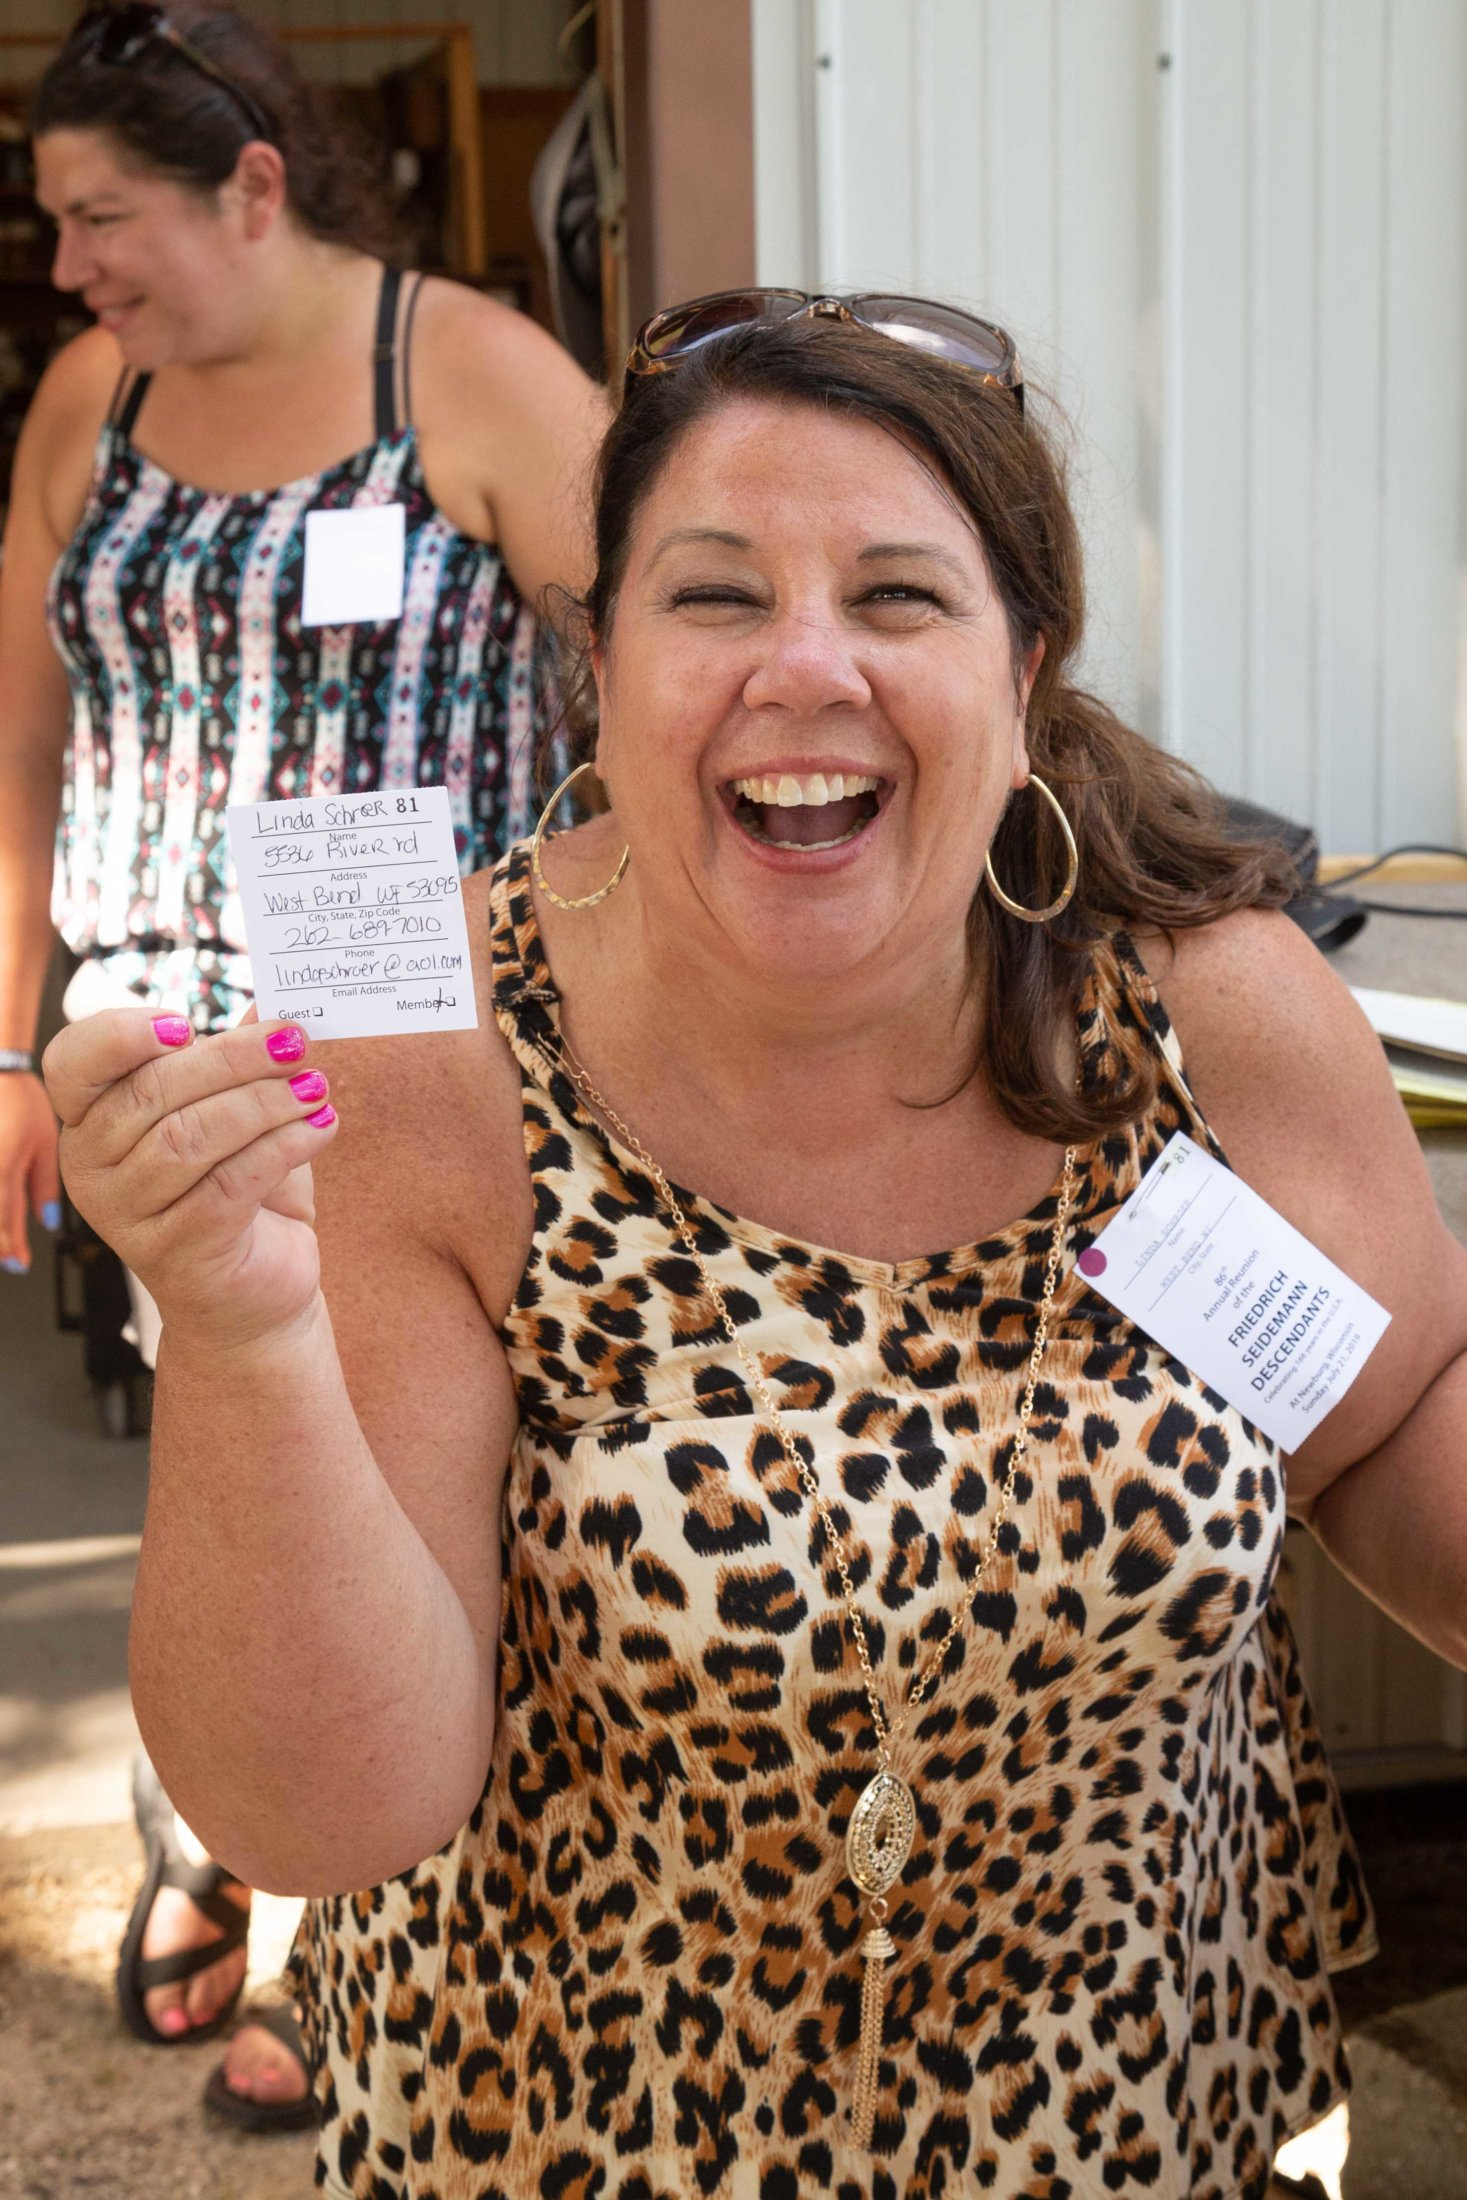 Linda Picks Her Own Ticket For A Door Prize. Way To Go Linda. I Bet You Can't Do That Again.